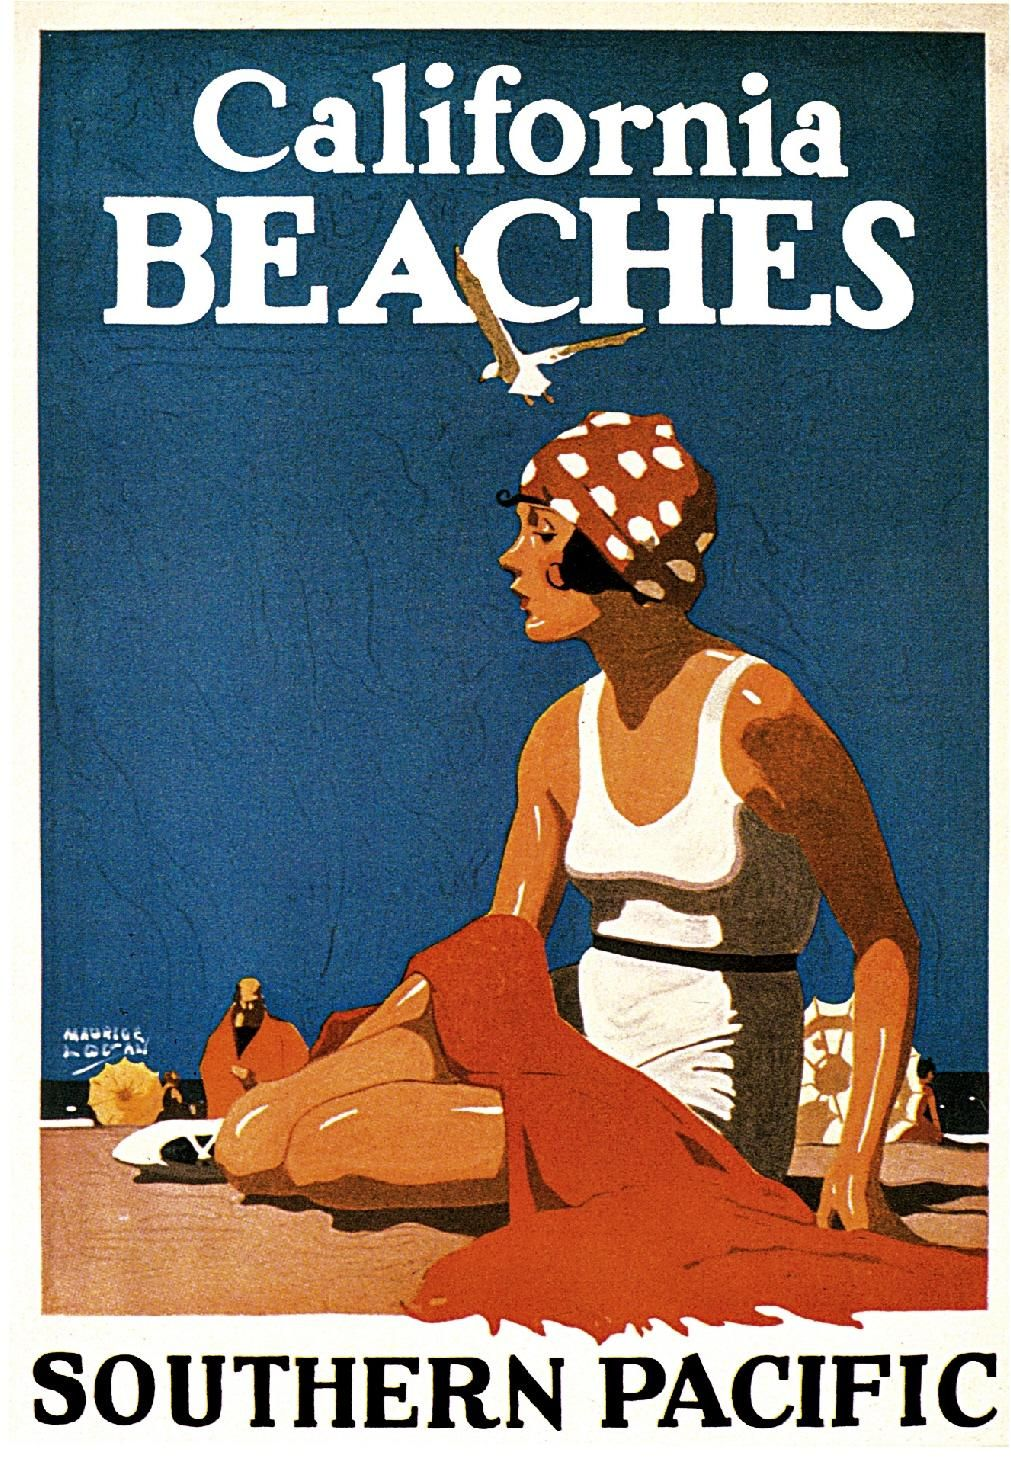 California Beaches travel poster for Southern Pacific, 1923 Artist Maurice Logan